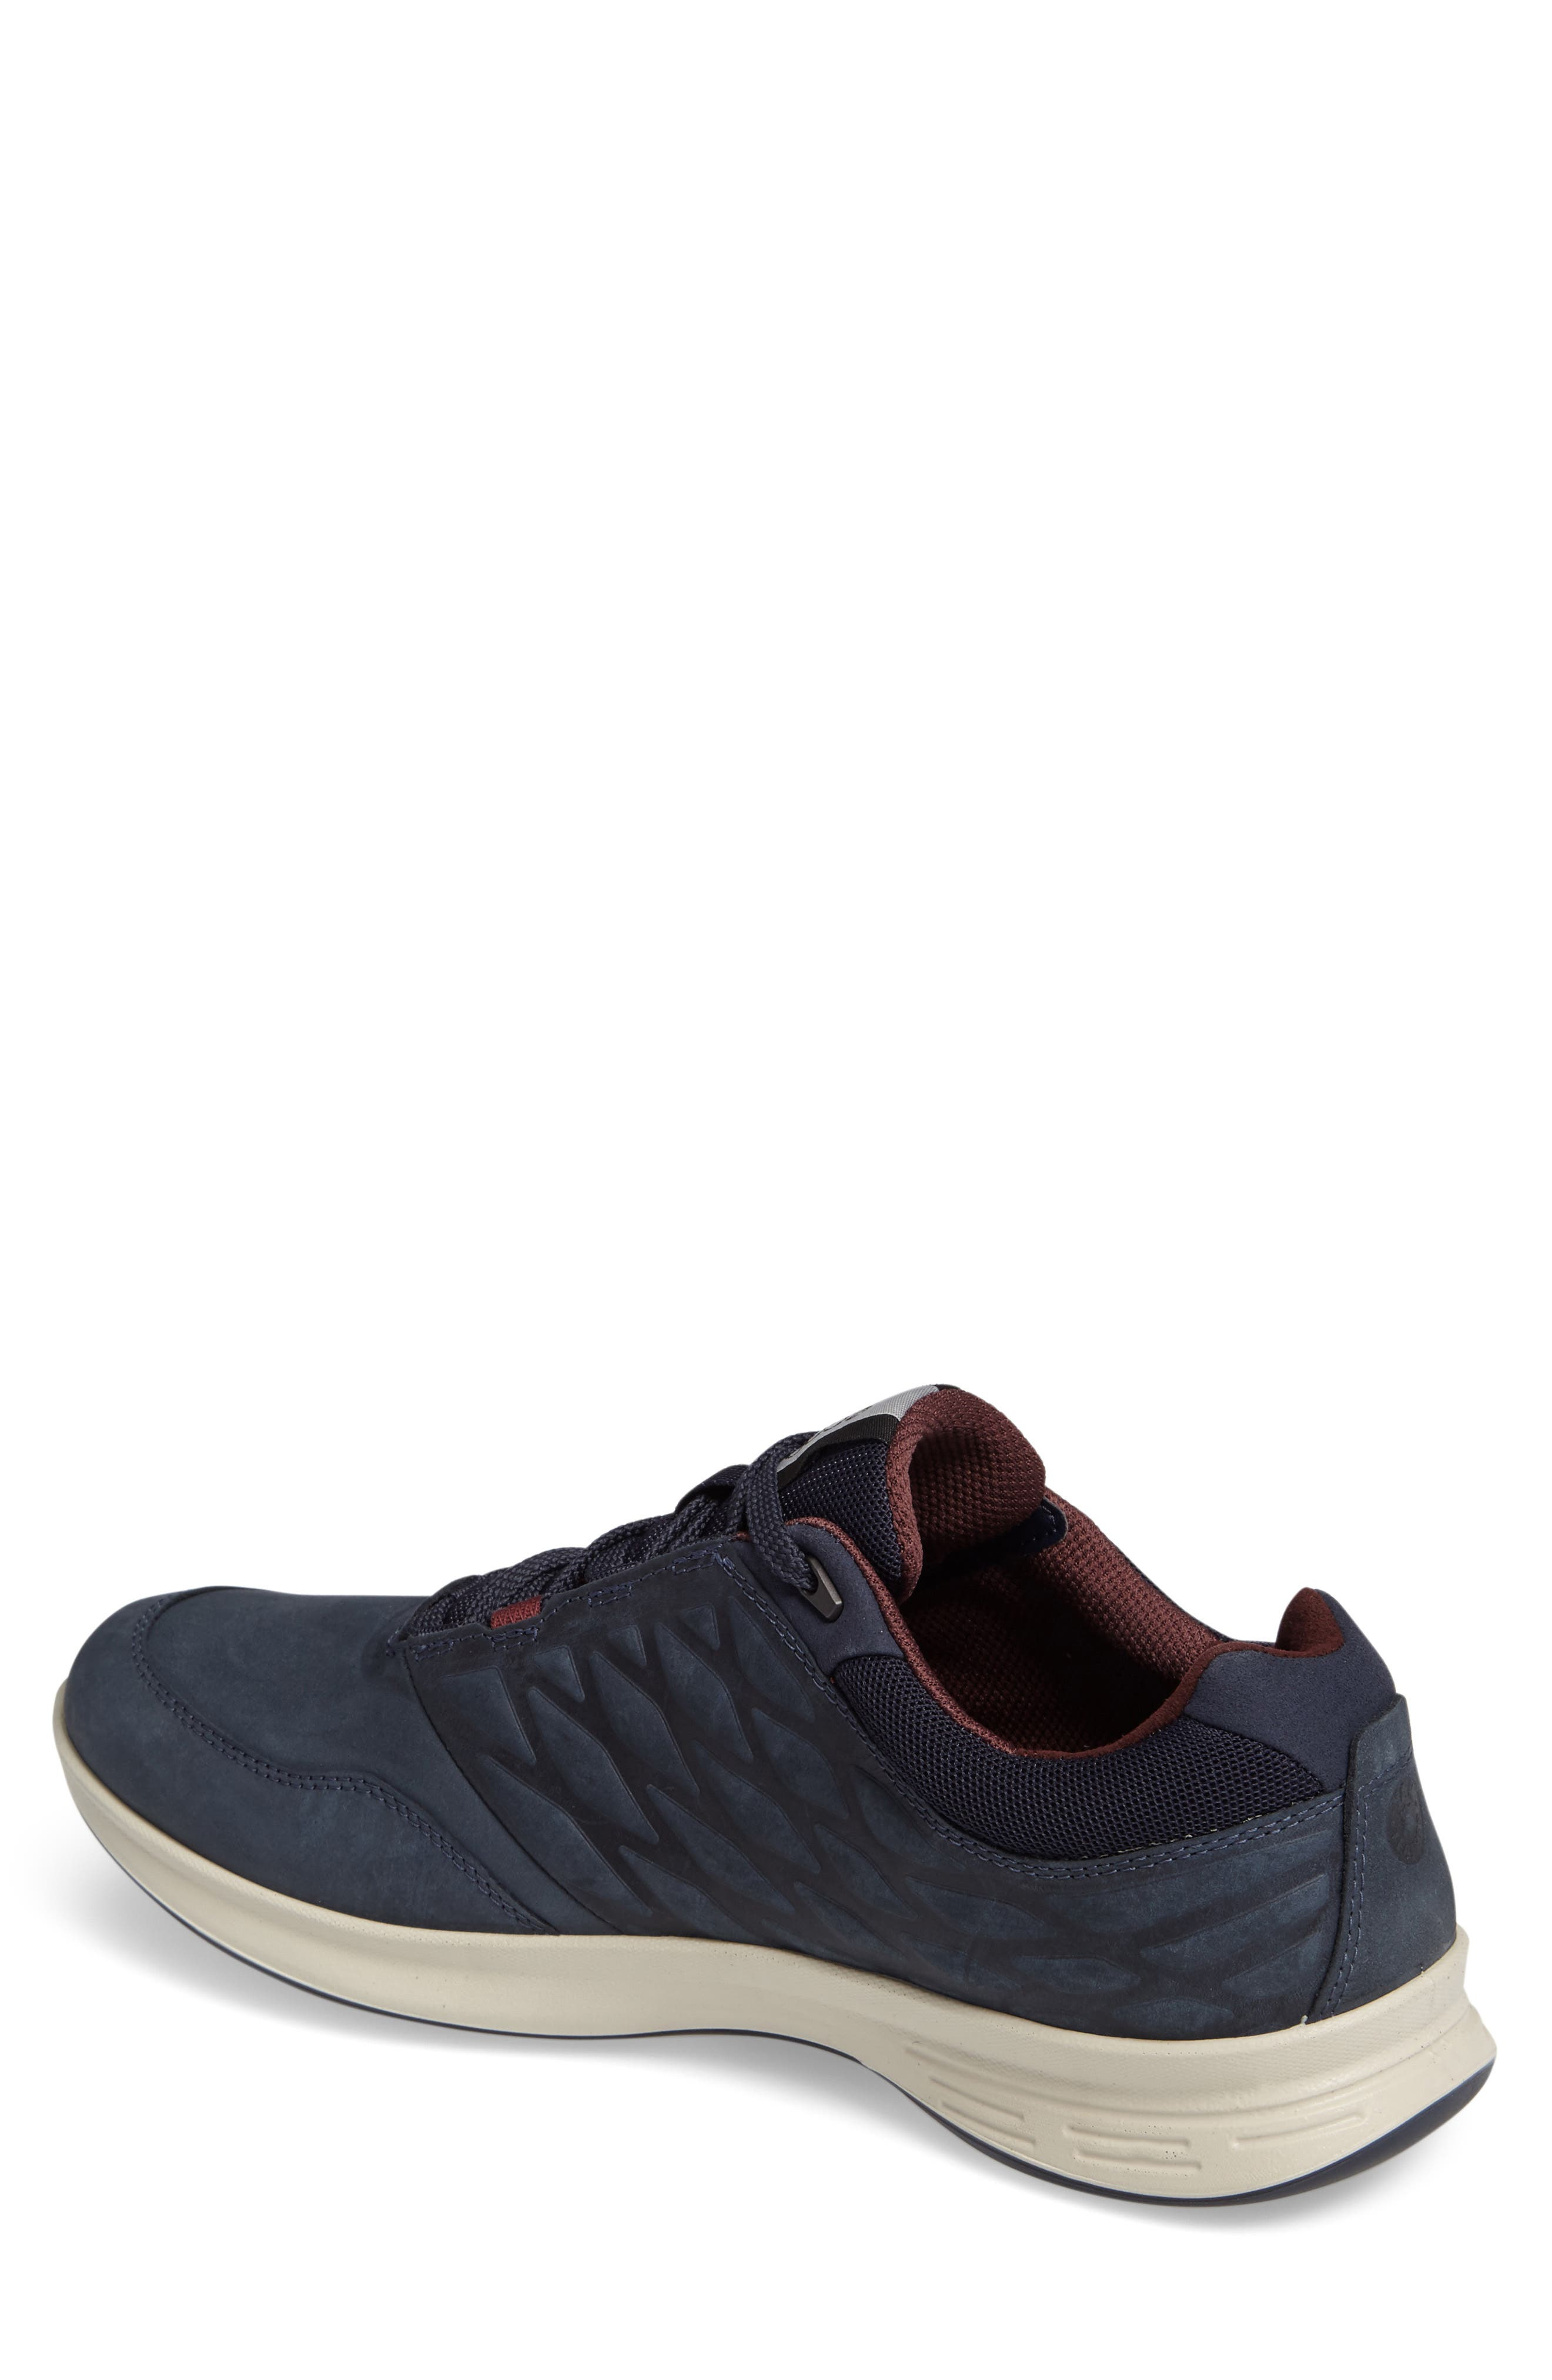 'Exceed' Leather Sneaker,                             Alternate thumbnail 2, color,                             Marine